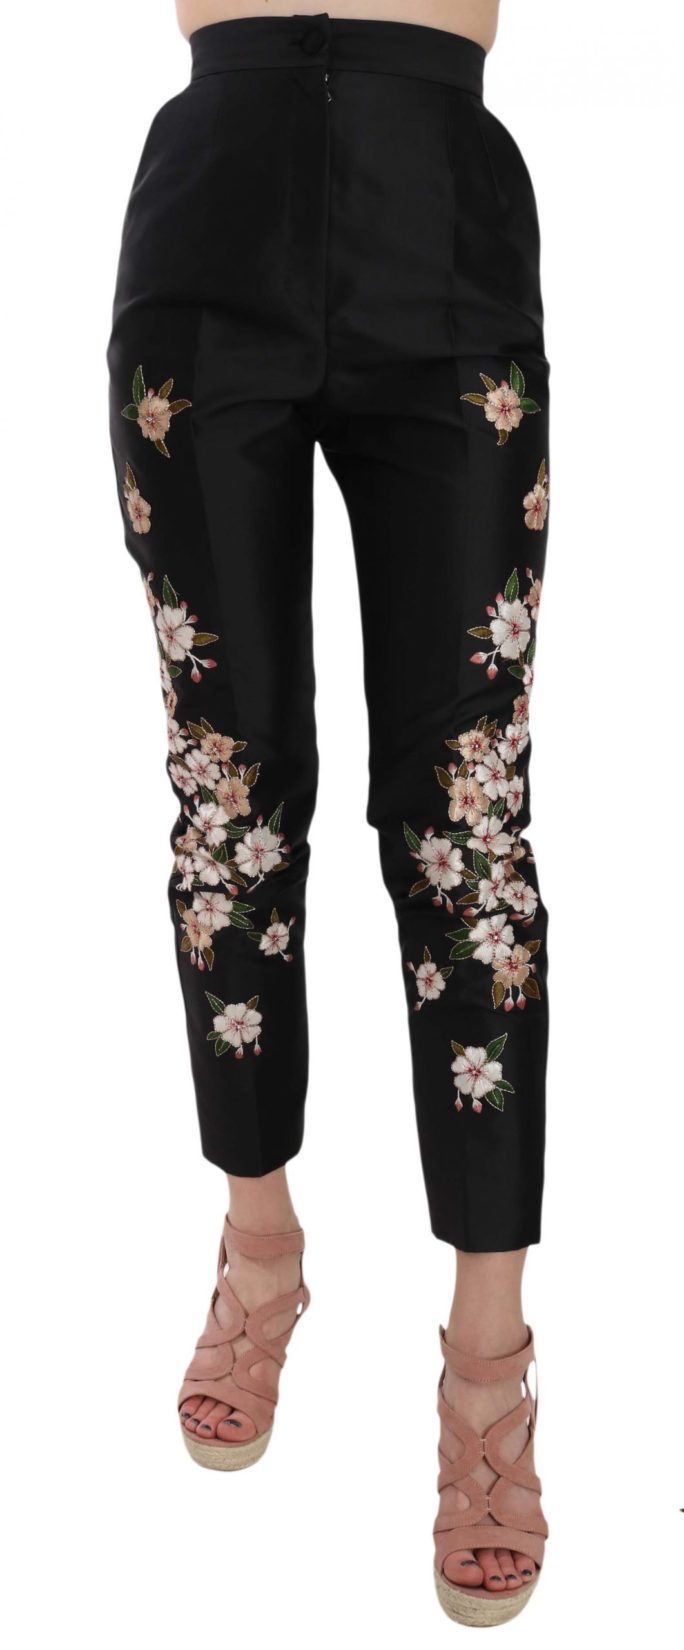 658519 Black Silk Floral Embroidered Trousers Slim Pants.jpg